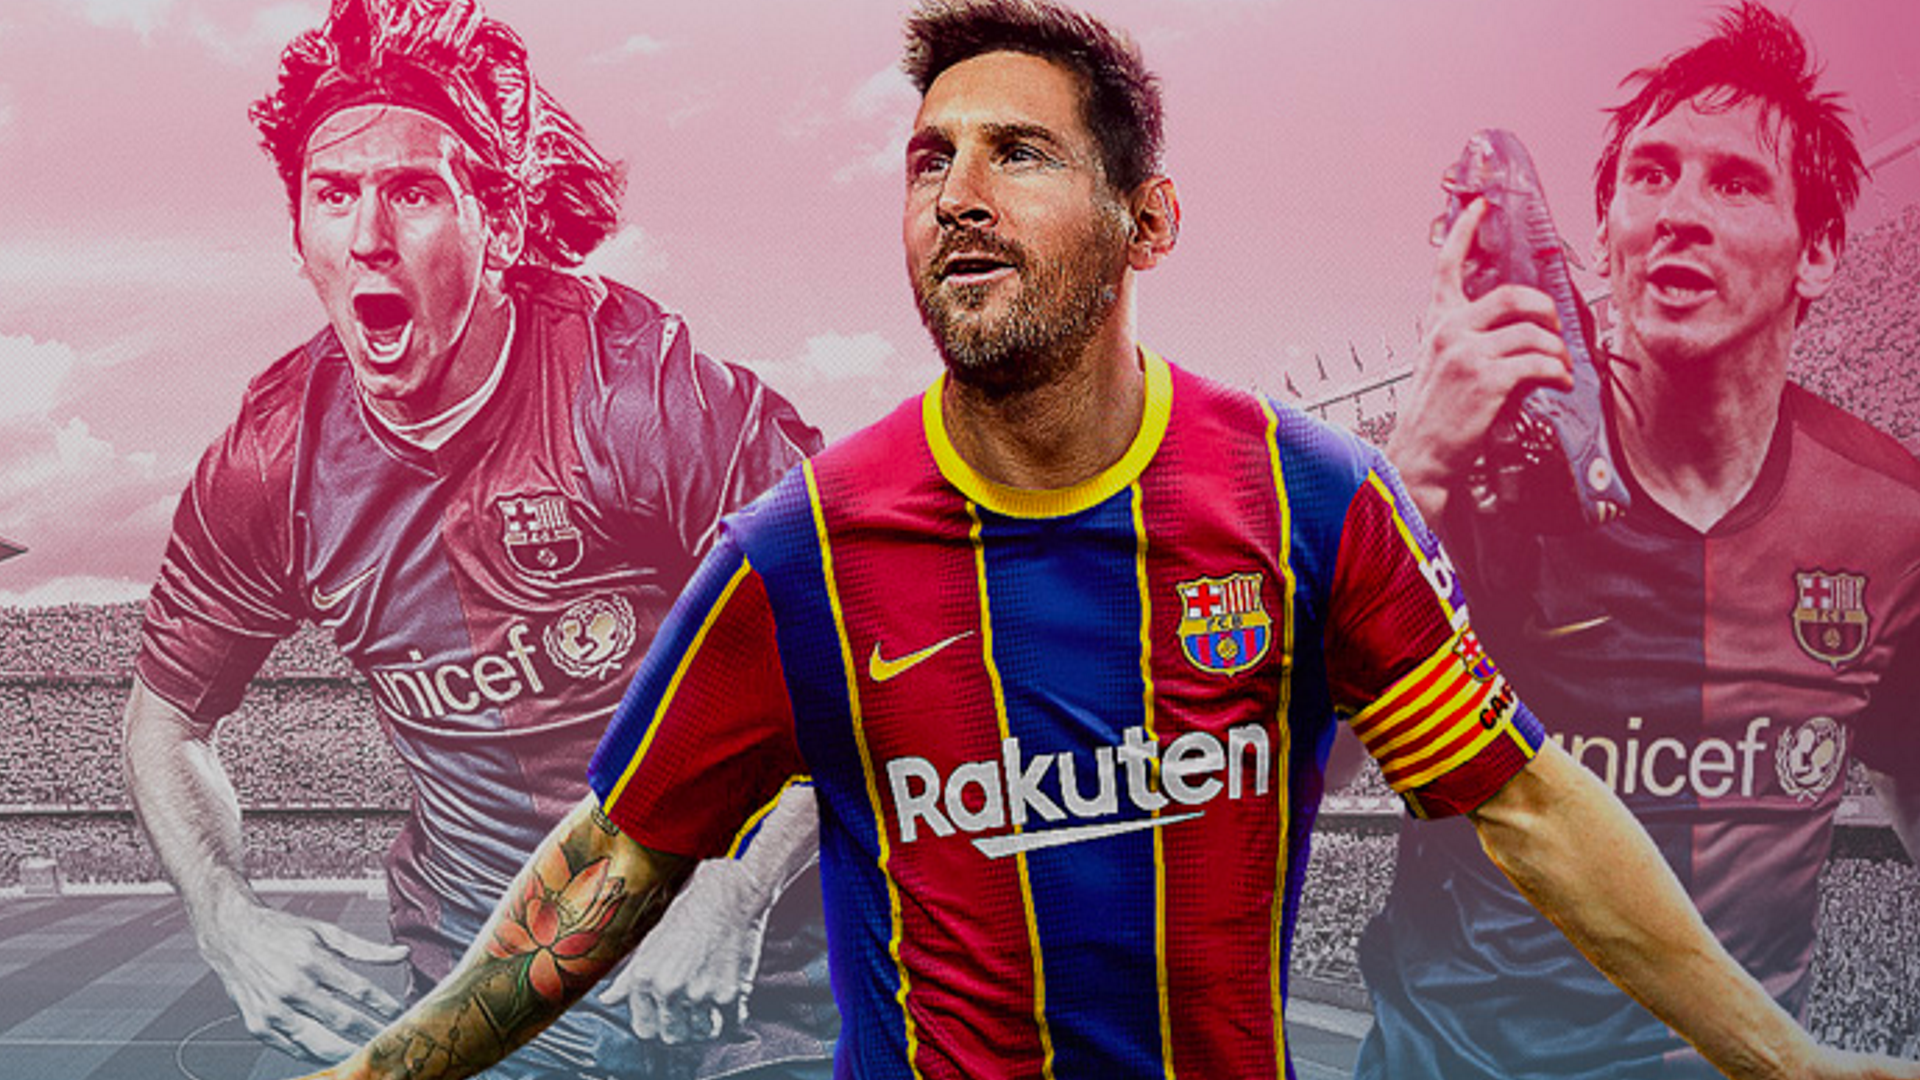 PES 2021 Wallpapers   Top PES 2021 Backgrounds   WallpaperAccess 1920x1080